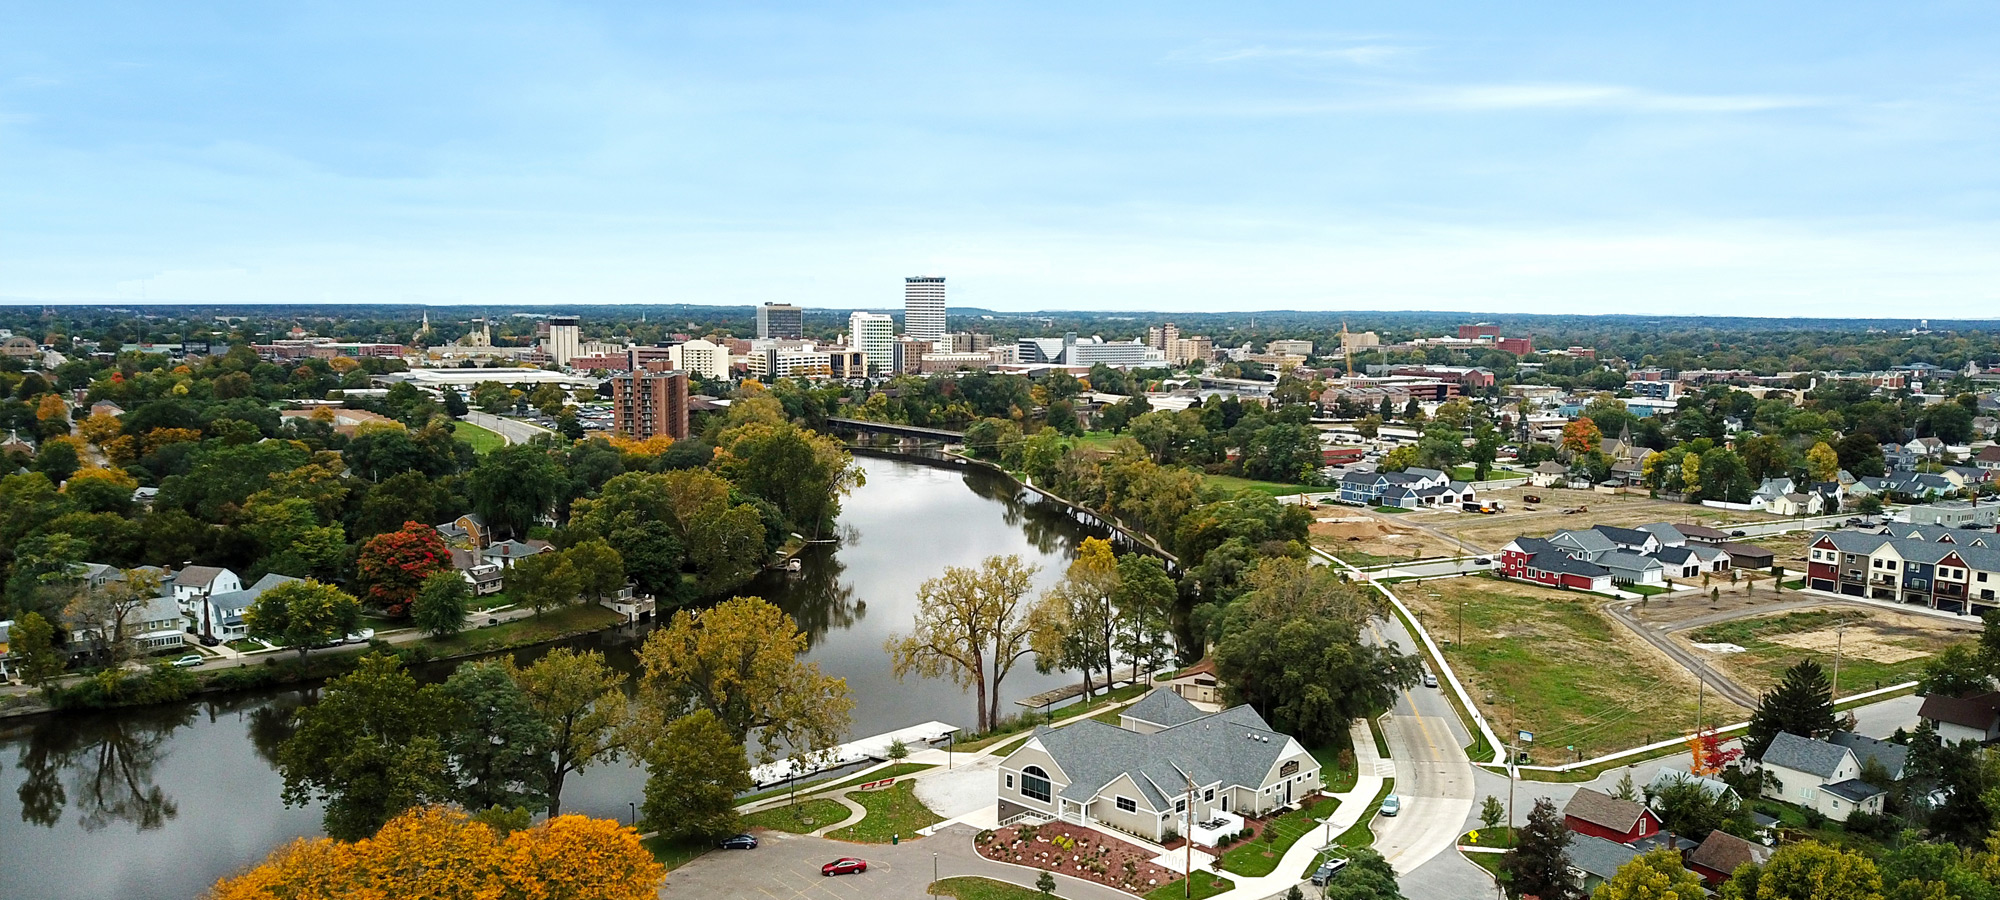 SouthBend IN skyline